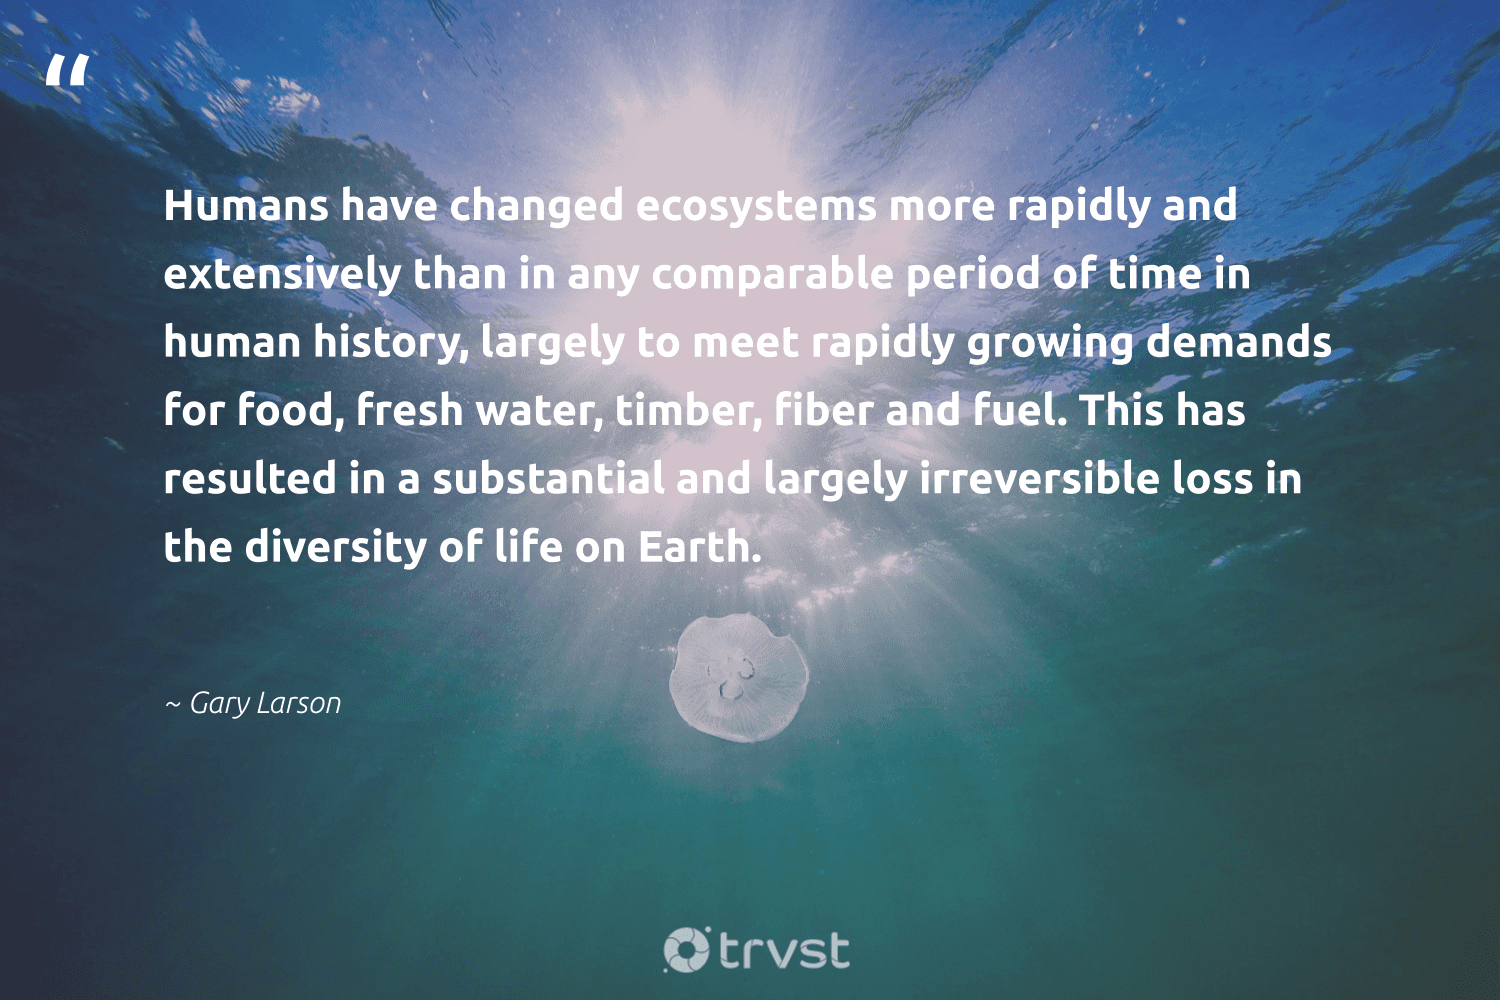 """""""Humans have changed ecosystems more rapidly and extensively than in any comparable period of time in human history, largely to meet rapidly growing demands for food, fresh water, timber, fiber and fuel. This has resulted in a substantial and largely irreversible loss in the diversity of life on Earth.""""  - Gary Larson #trvst #quotes #earth #water #diversity #food #representationmatters #planet #fish #socialchange #impact #inclusion"""